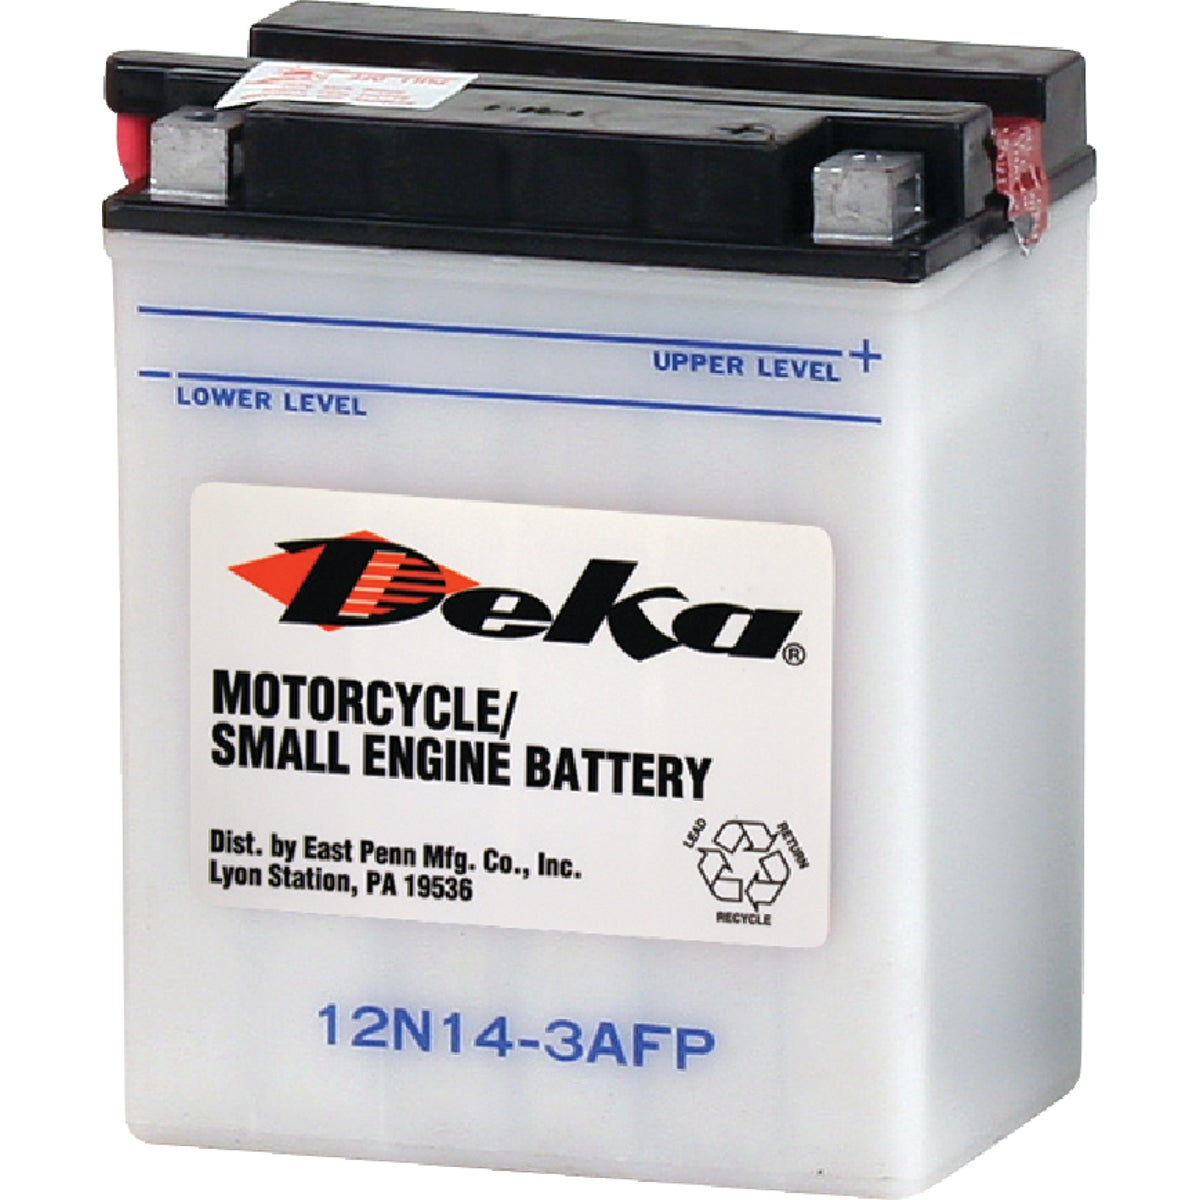 Deka Powersport Battery, 12N143AFP